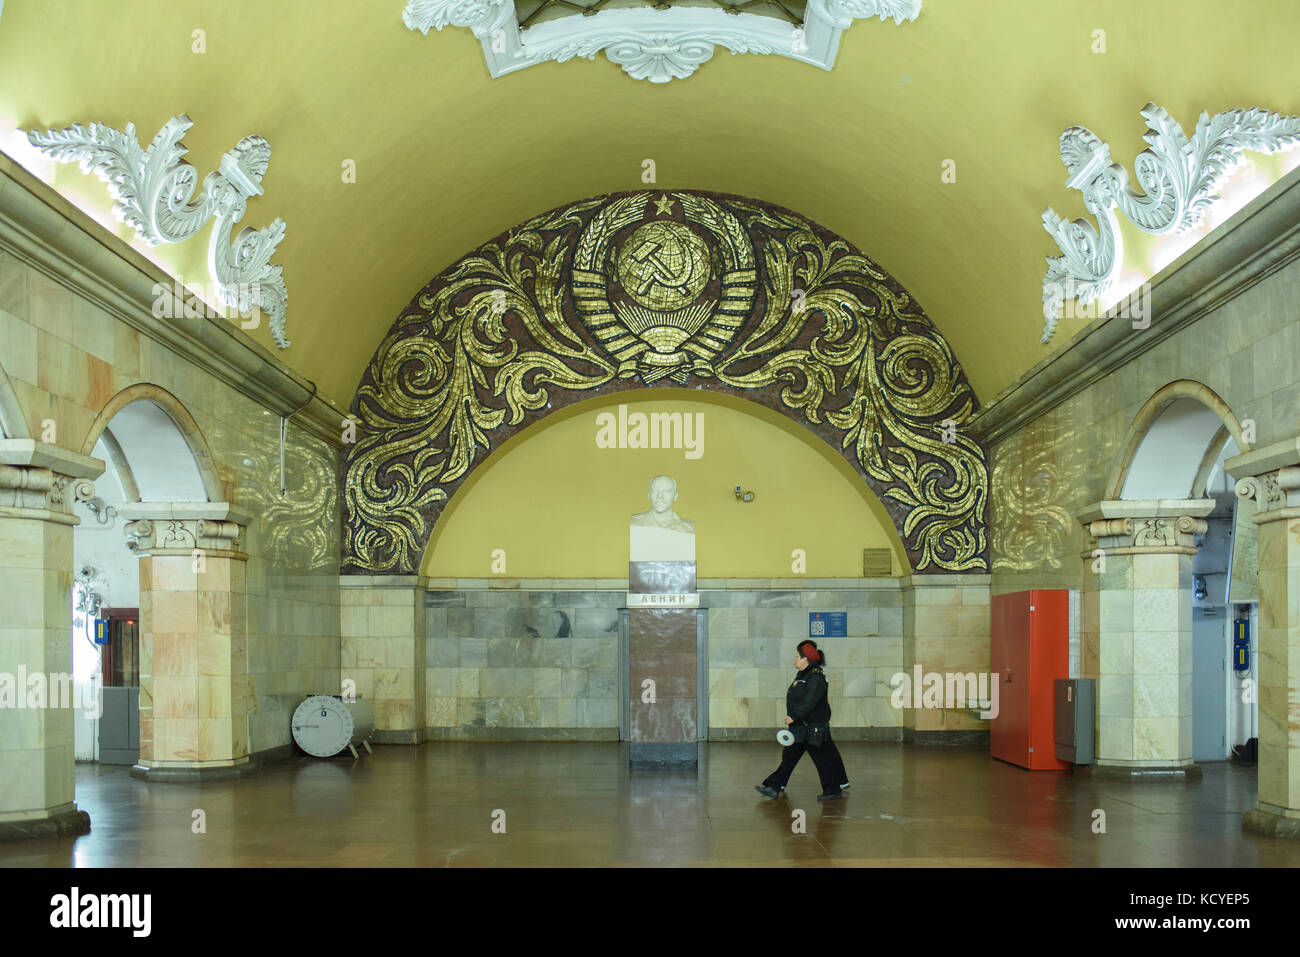 The station is noted for its being located under the busiest Moscow transport hub, Komsomolskaya Square, which serves Stock Photo